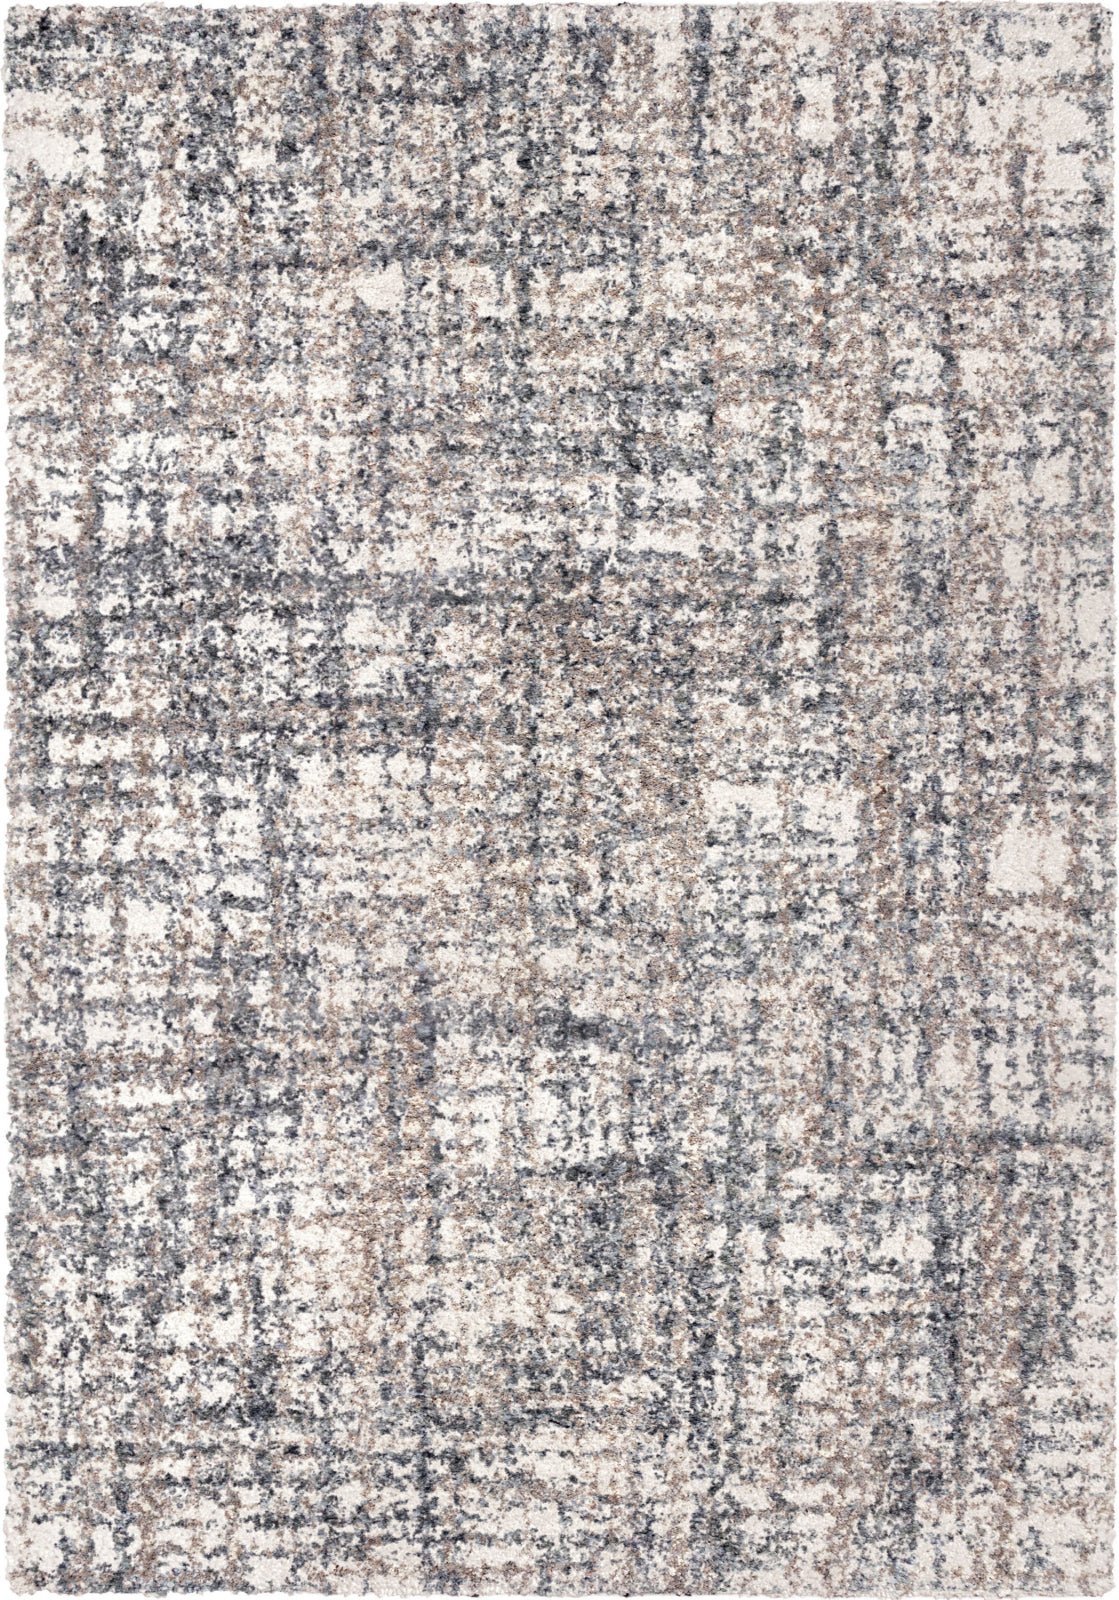 Orian Rugs Cotton Tail Cross Thatch Taupe Area Rug by Palmetto Living main image